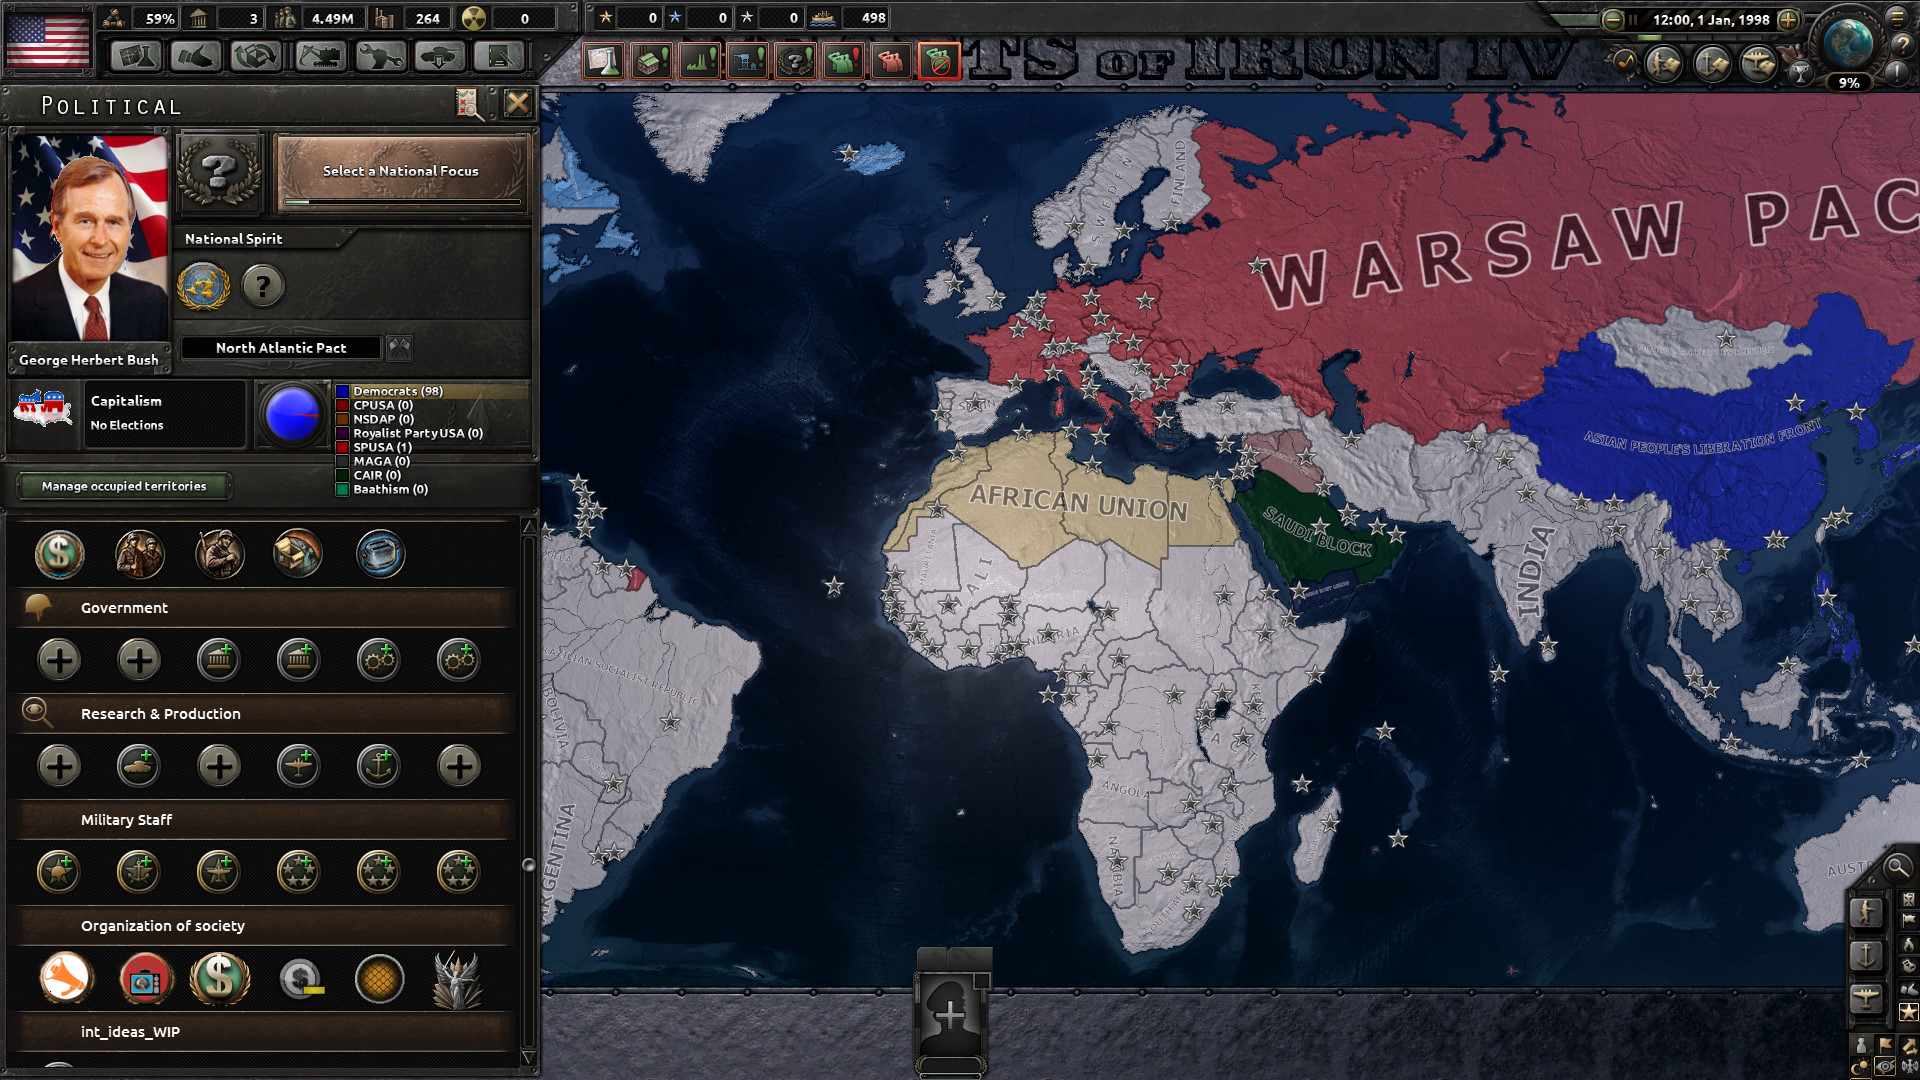 Image 27 - Hearts of Iron IV: The International mod for